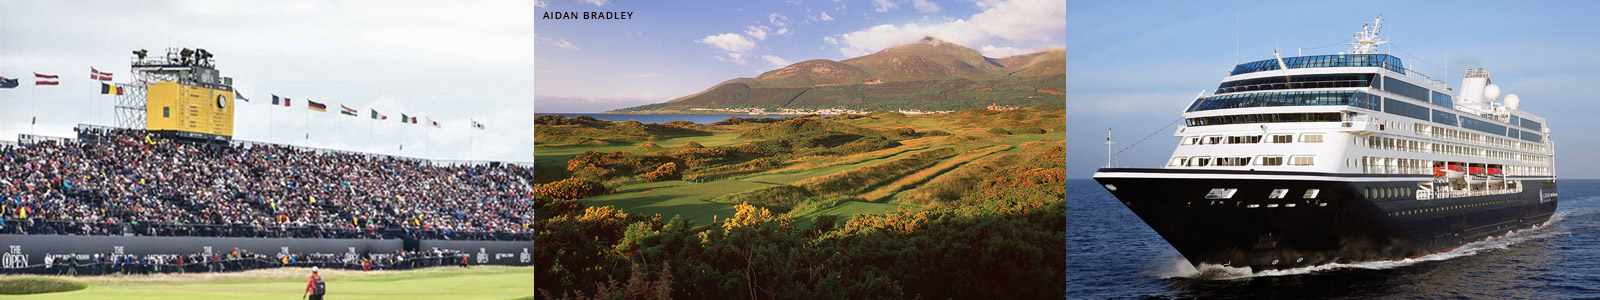 British Golf The Open Championship Packages and Golf Cruises